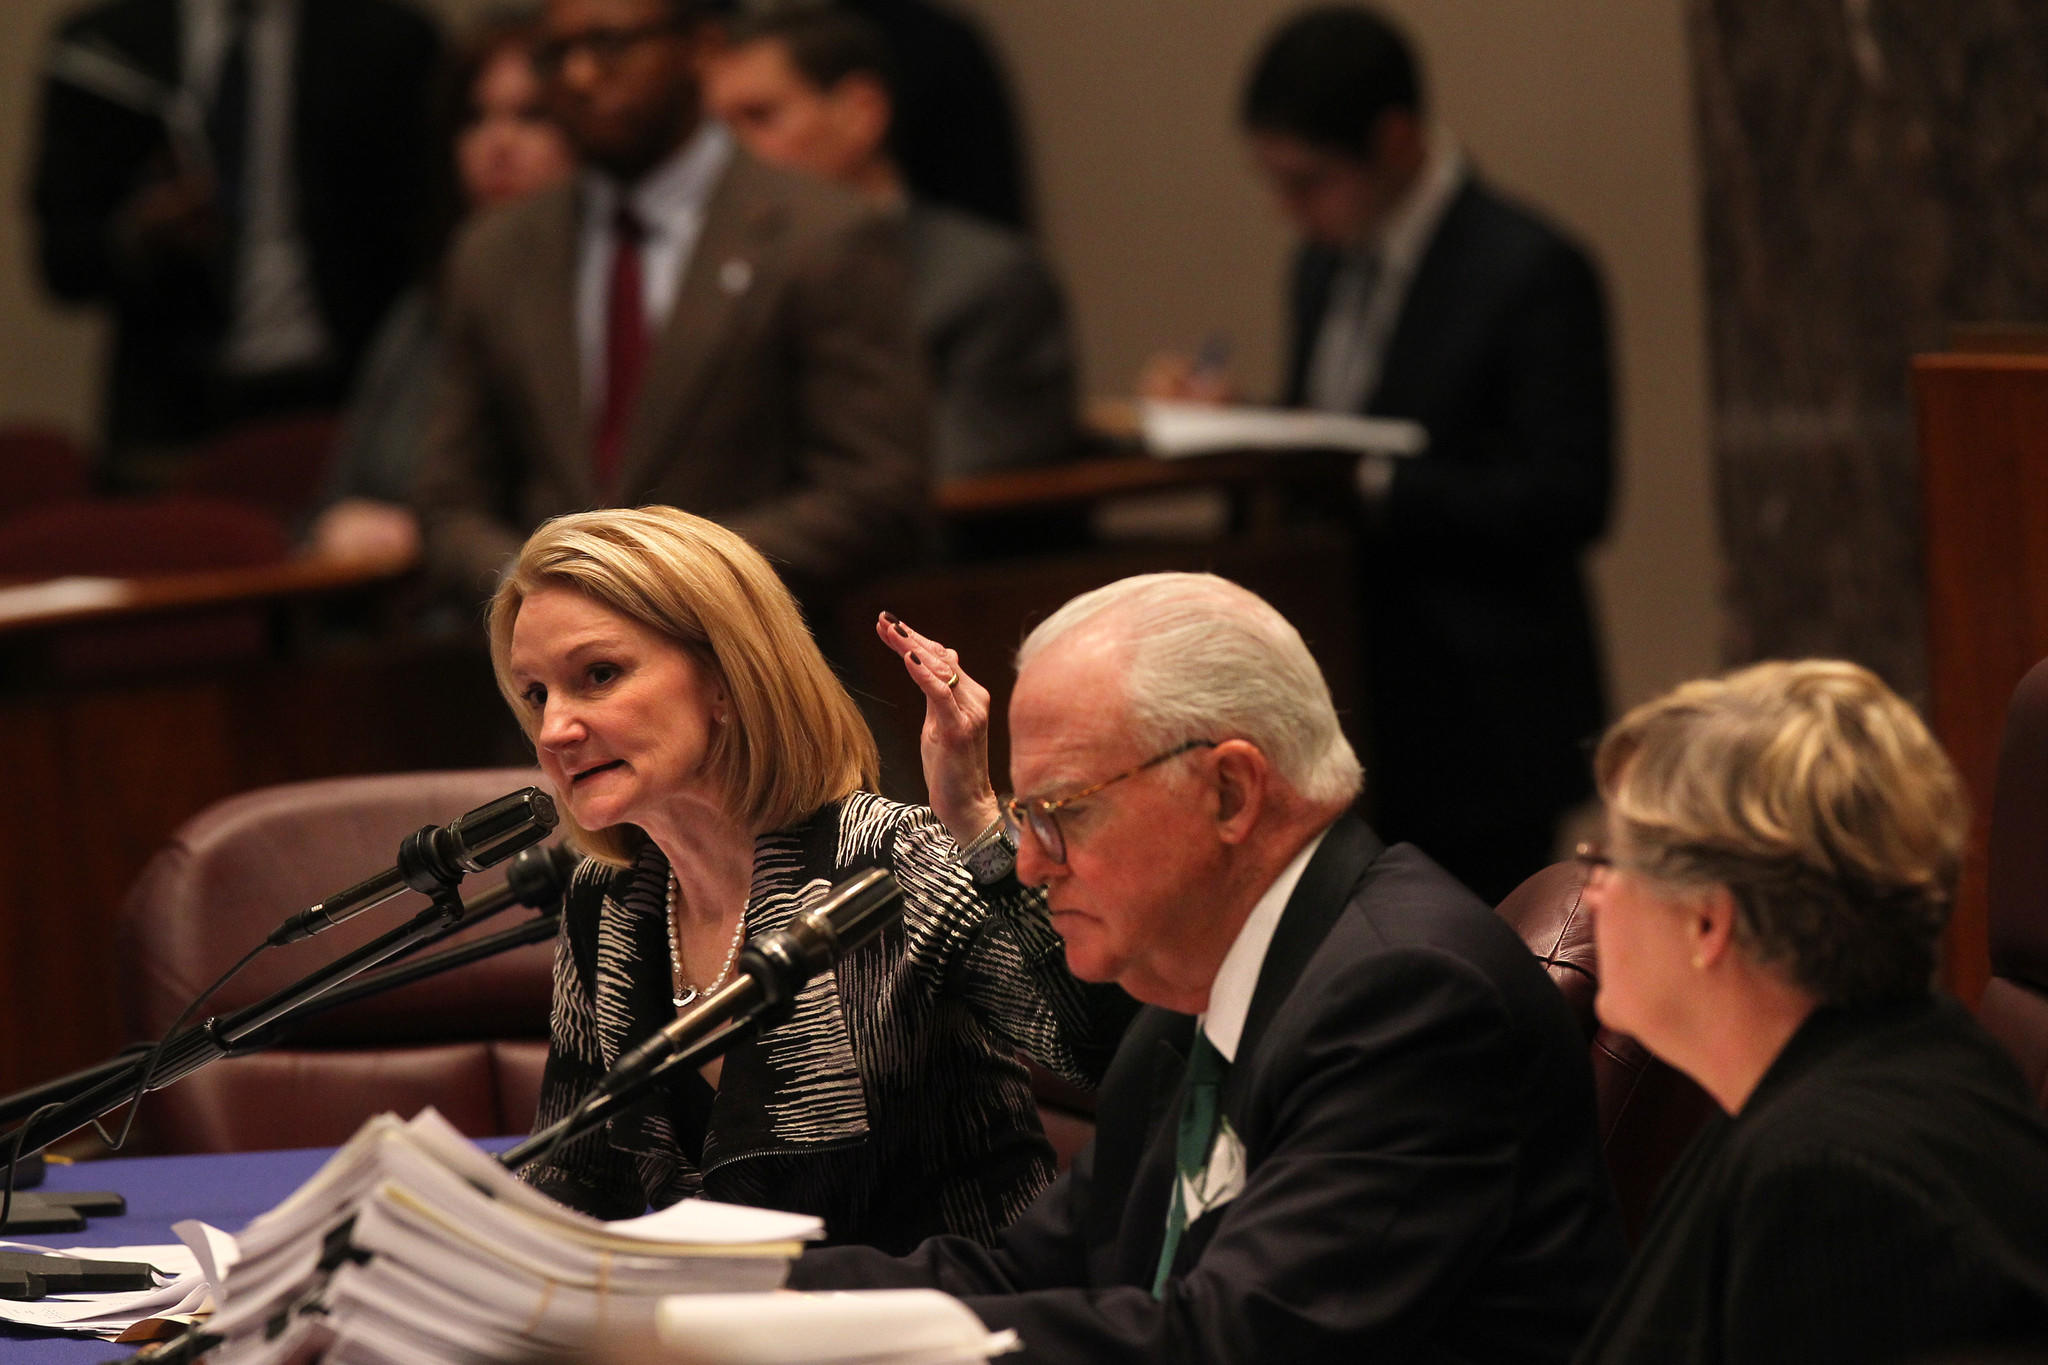 CFO Lois Scott, left, Ald. Edward Burke, 14th and Marla Kaiden, Chief Administrative Officer for the Committee on Finance Chicago City Council answer questions during the finance committee meeting Monday.